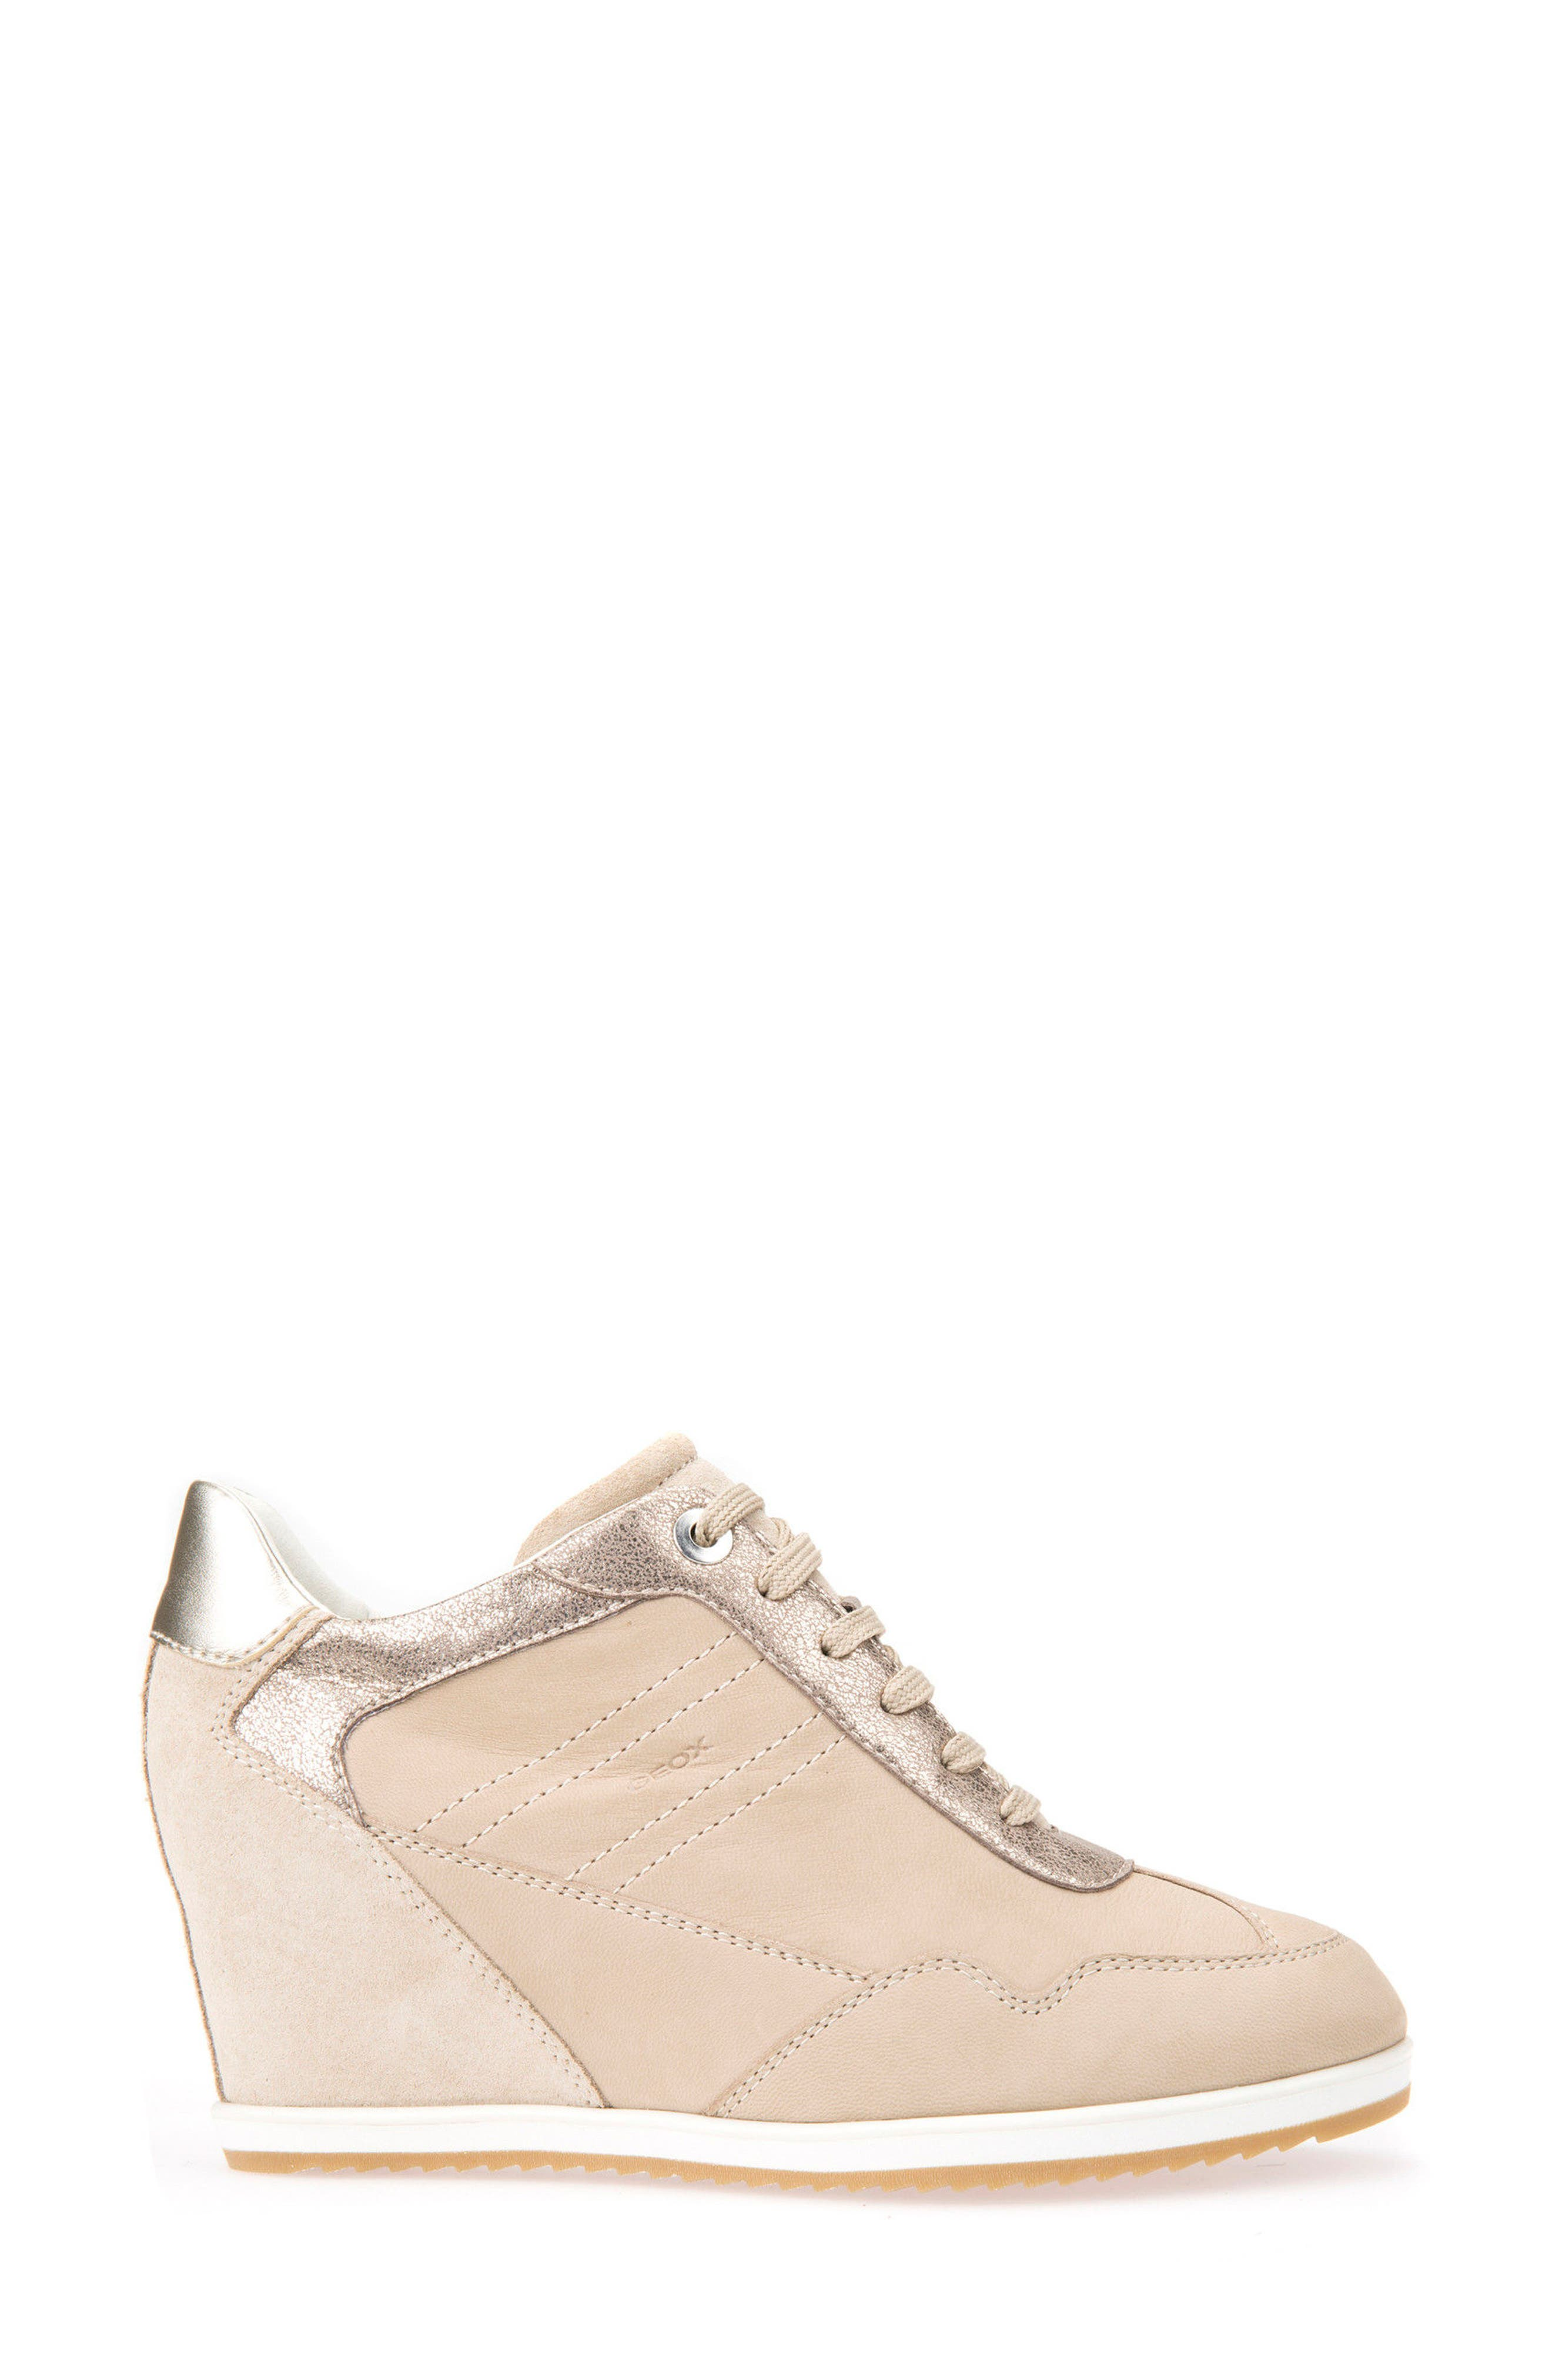 Illusion 34 Wedge Sneaker,                             Alternate thumbnail 3, color,                             SAND LEATHER